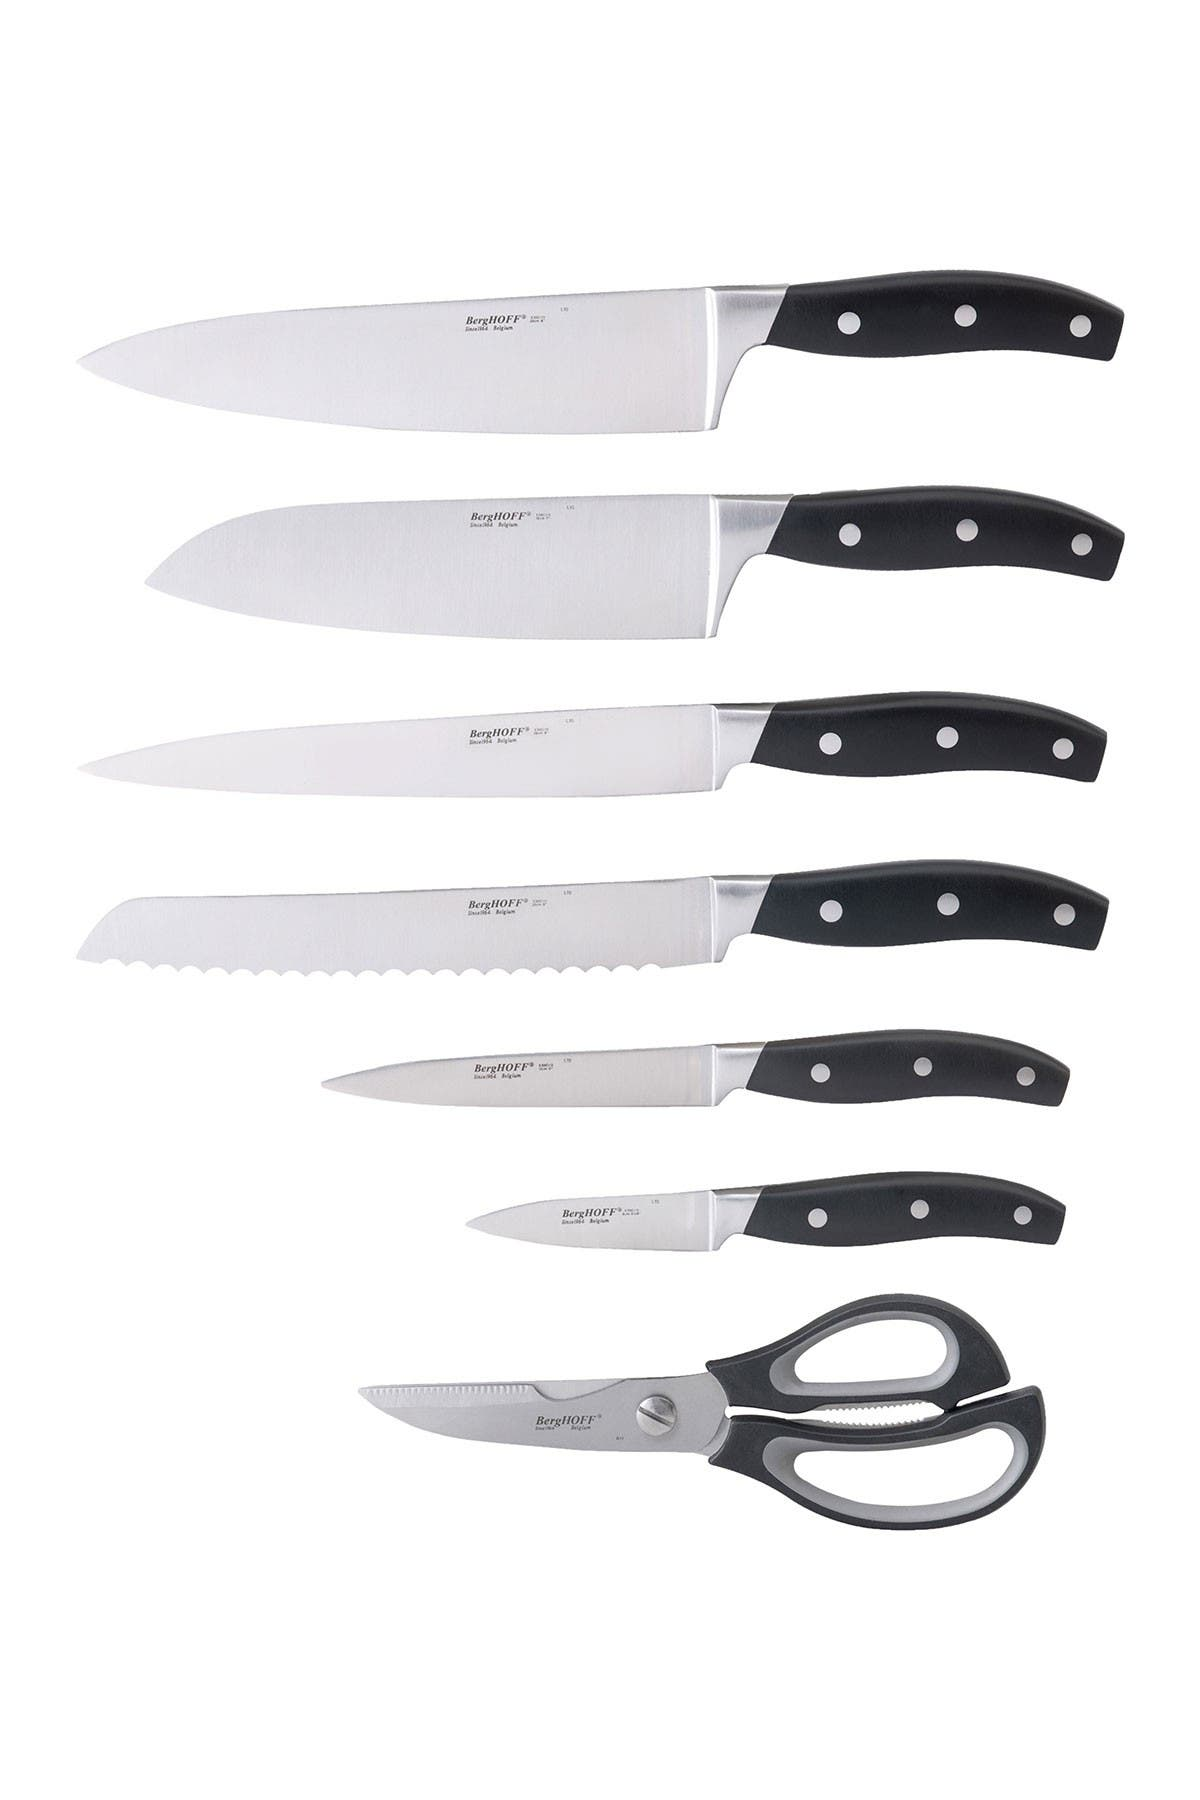 Image of BergHOFF Forged 7pc SS Cutlery Set